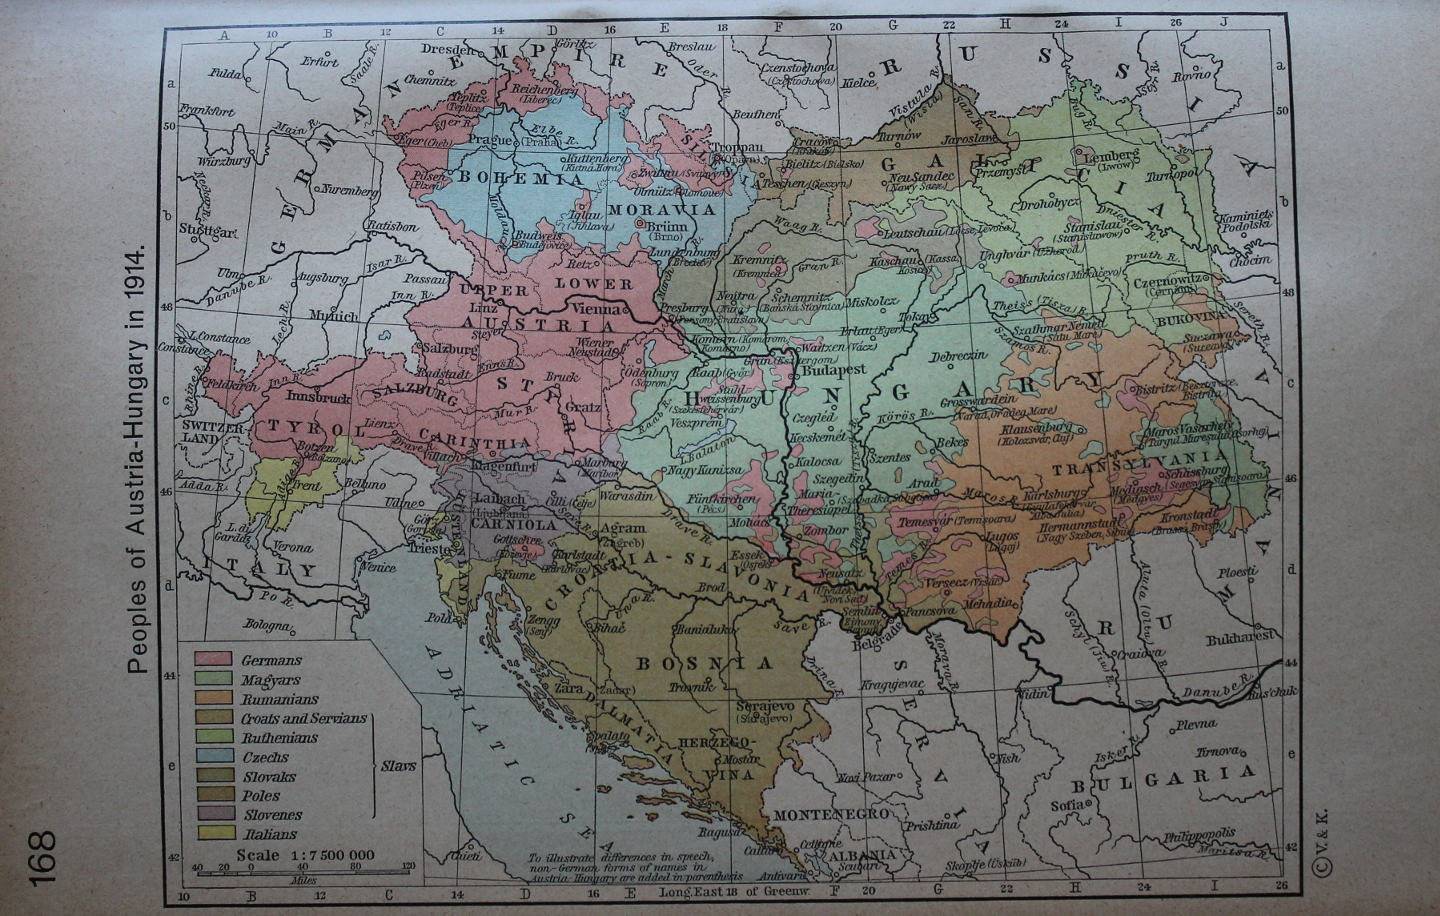 Peoples of Austria-Hungary in 1914 from 'Historical Altas' by William R. Shepherd. The empire's population included Germans, Magyars, Romanians, Italians, and Slavs including Croats, Serbians, Ruthenians, Czechs, Slovaks, Poles, and Slovenes.